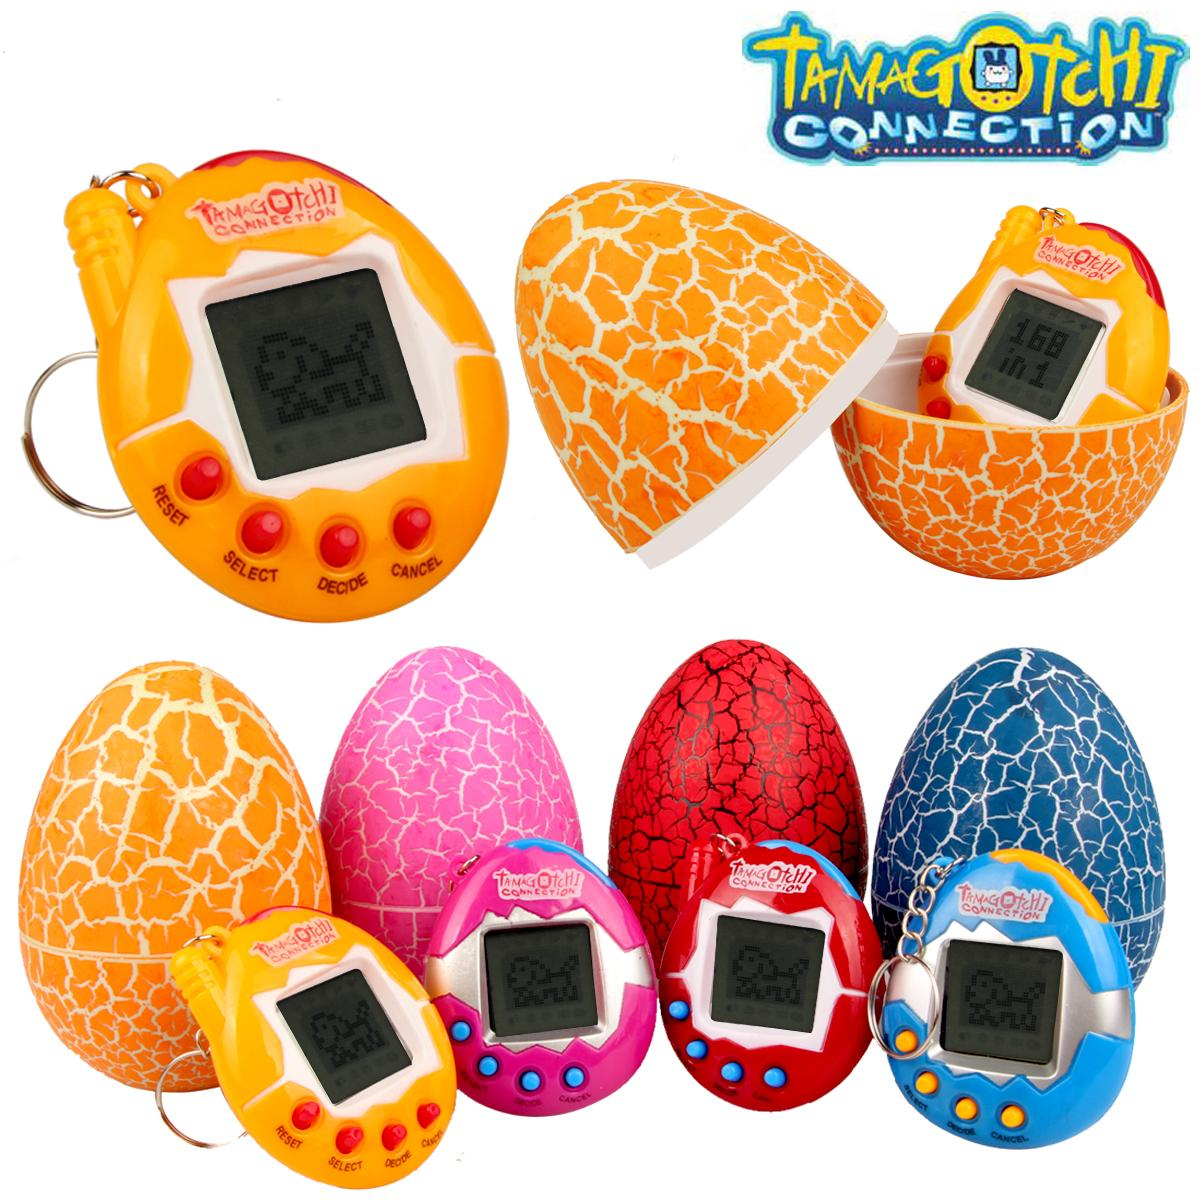 Tamagotchi Connection Dinosaur Surprise Egg electrónicas virtuais cibernéticos Pet Kids Brinquedos Presente